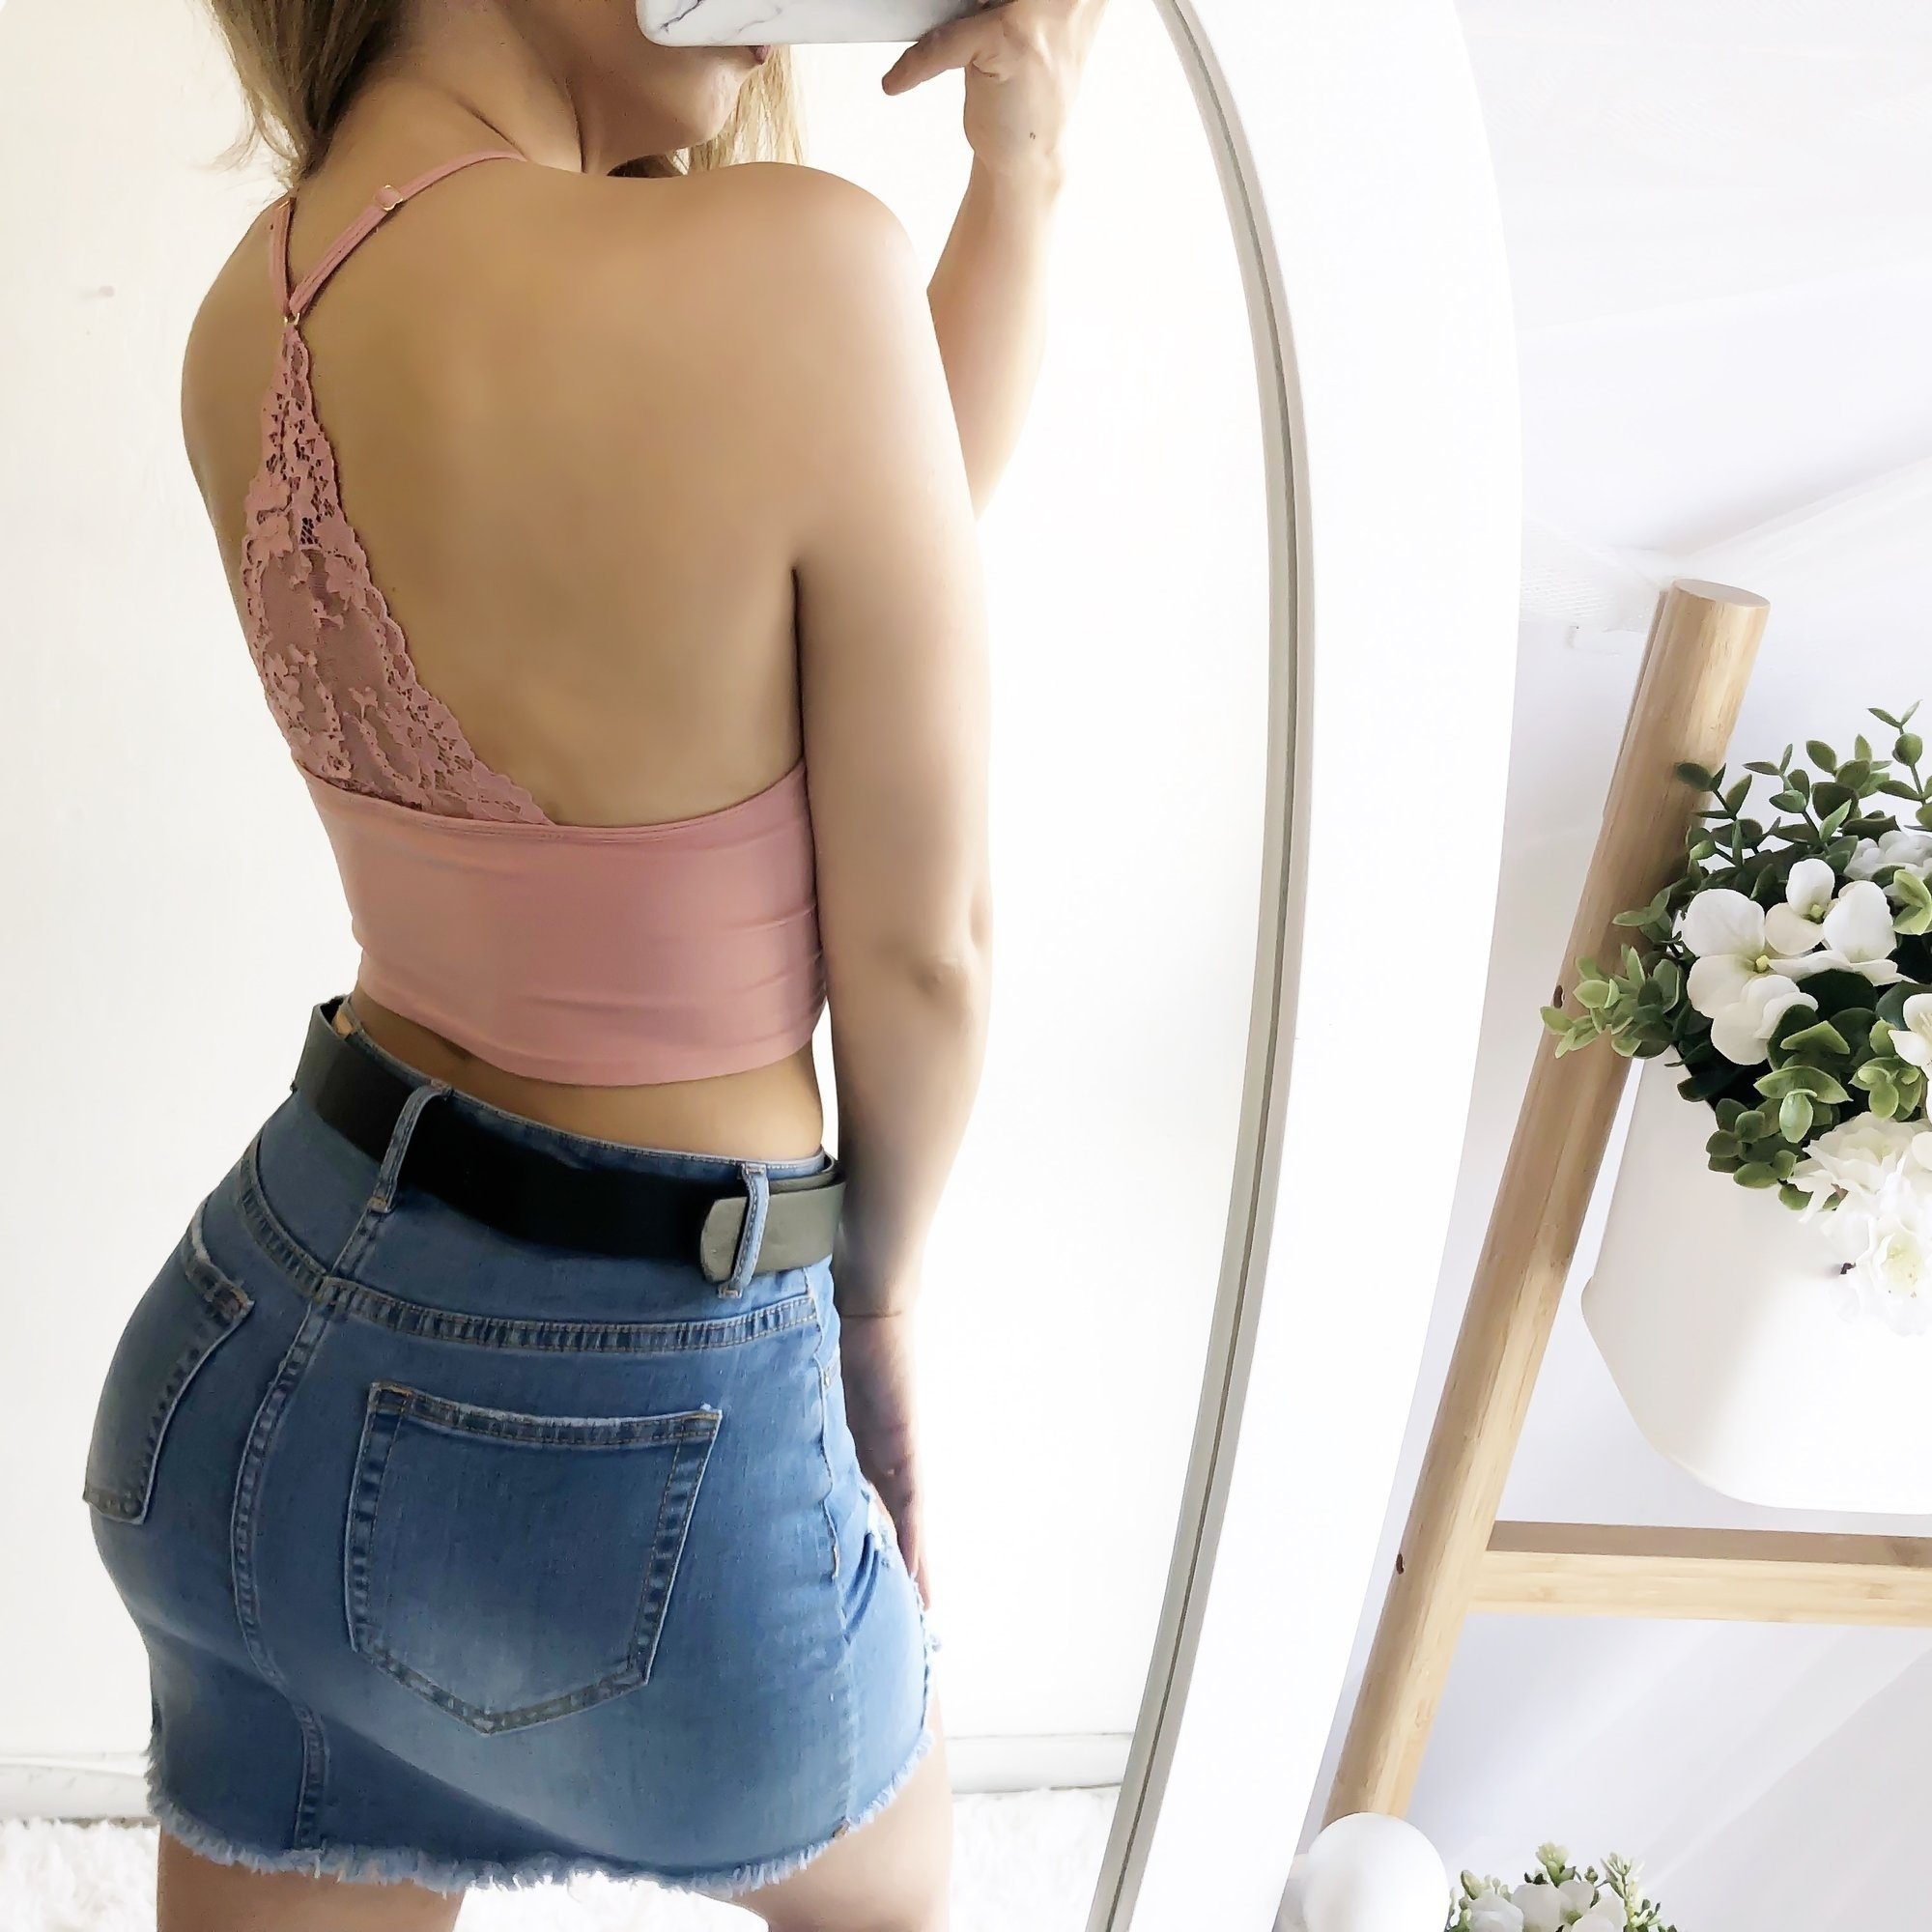 Women 39 s Fashion Floral Lace Triangle Casual Cropped Shirt Underwear Camisole Shirt T shirt Deep V neck Vest Shirt Blouse in Bras from Underwear amp Sleepwears